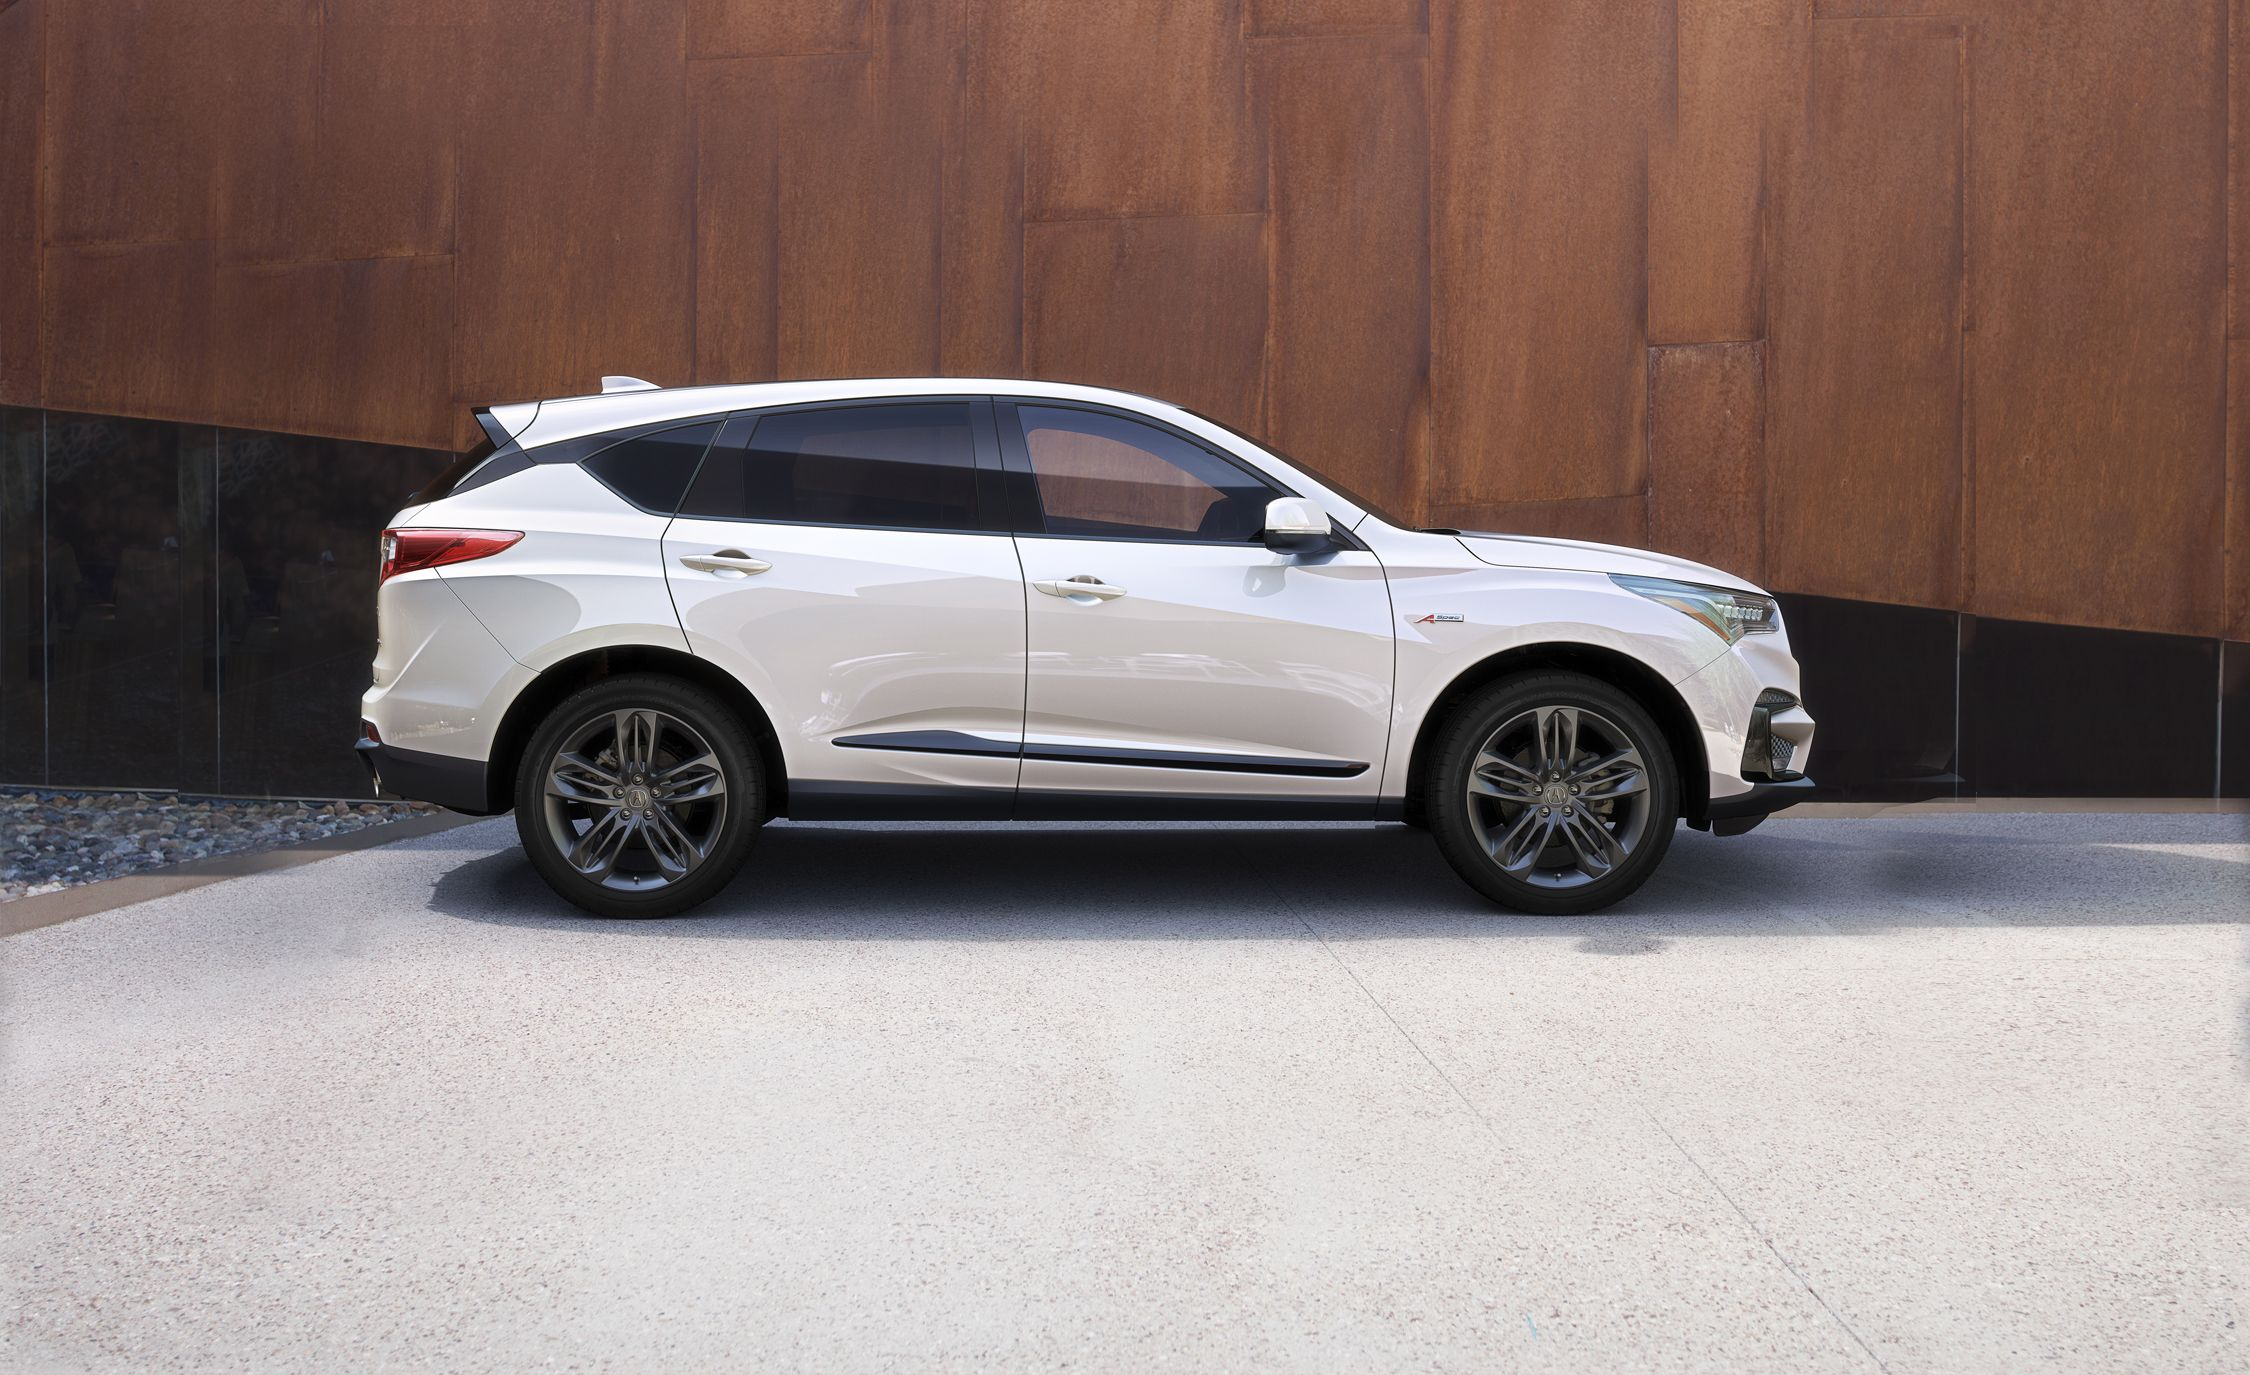 2019 Acura Rdx Crossover Official Photos And Info News Car And